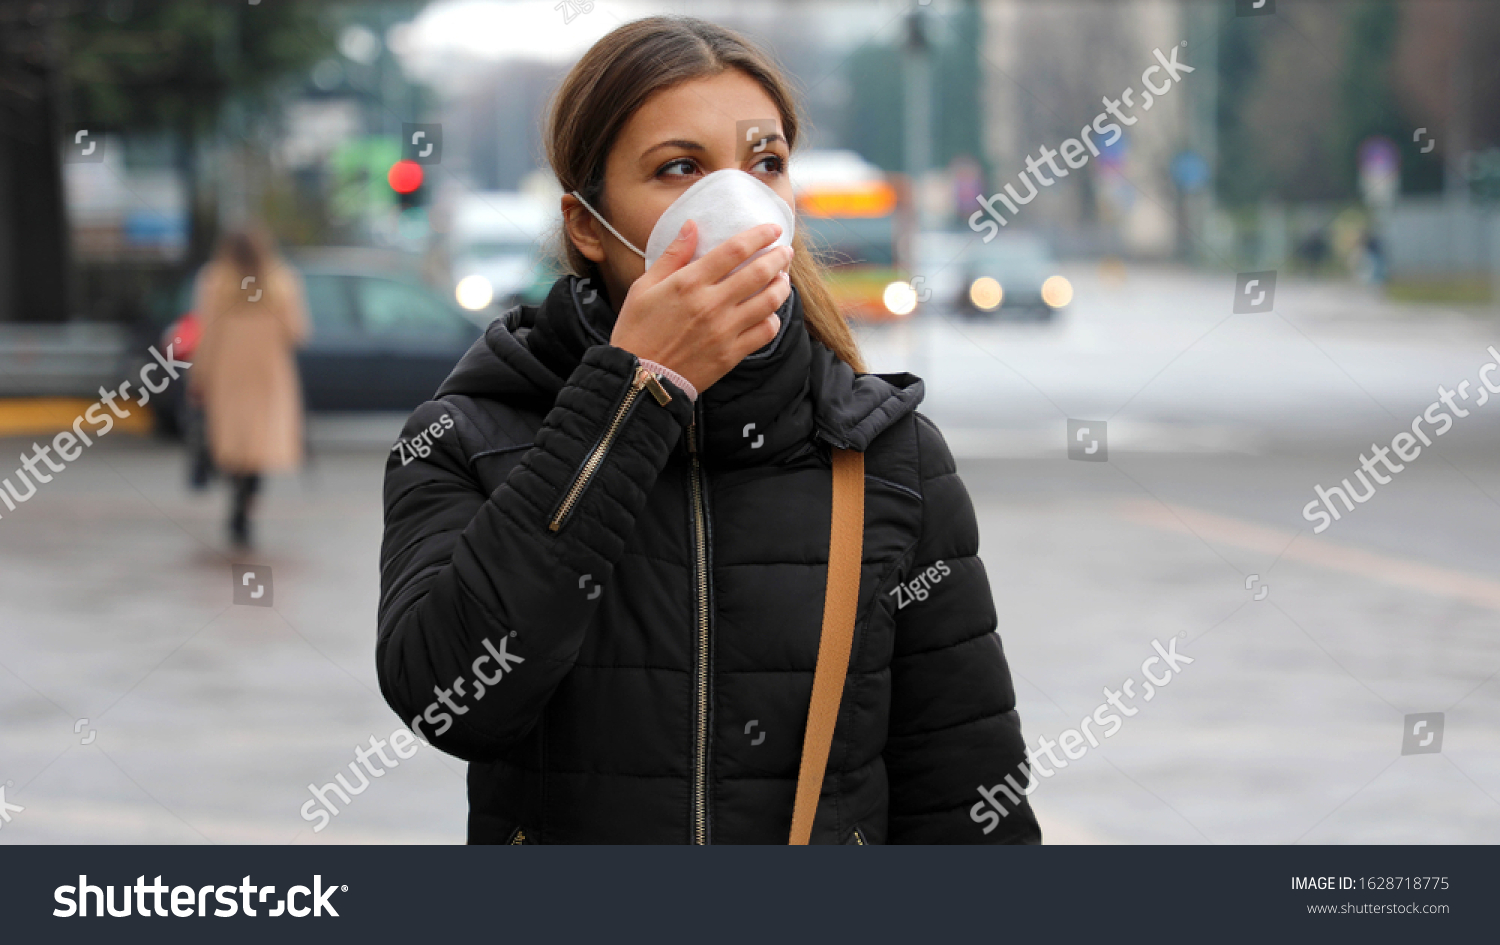 COVID-19 Pandemic Coronavirus Woman in city street wearing face mask protective for spreading of disease virus SARS-CoV-2. Girl with protective mask on face against Coronavirus Disease 2019. #1628718775